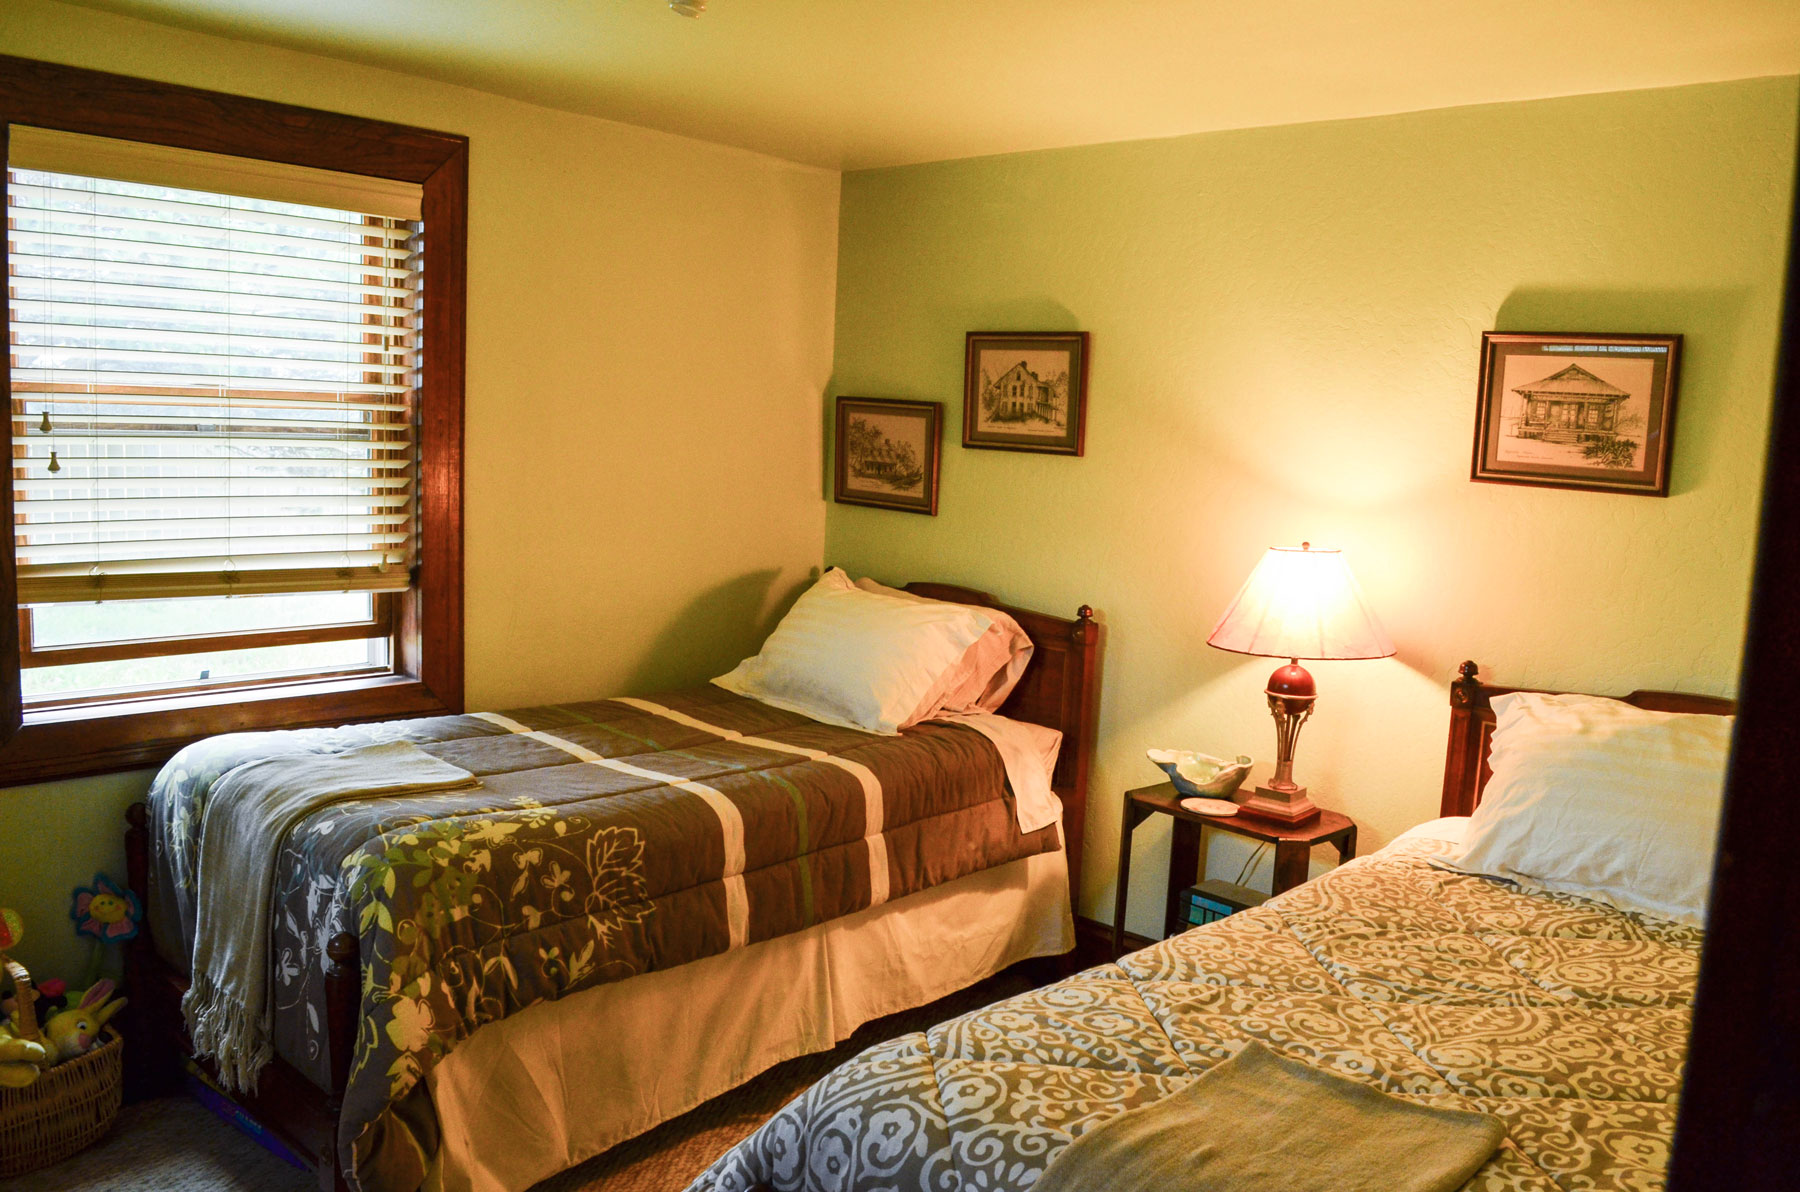 the secondary bedroom at the Bridge Cottage at B. Bryan Preserve in Point Arena, CA on the Mendocio Coast